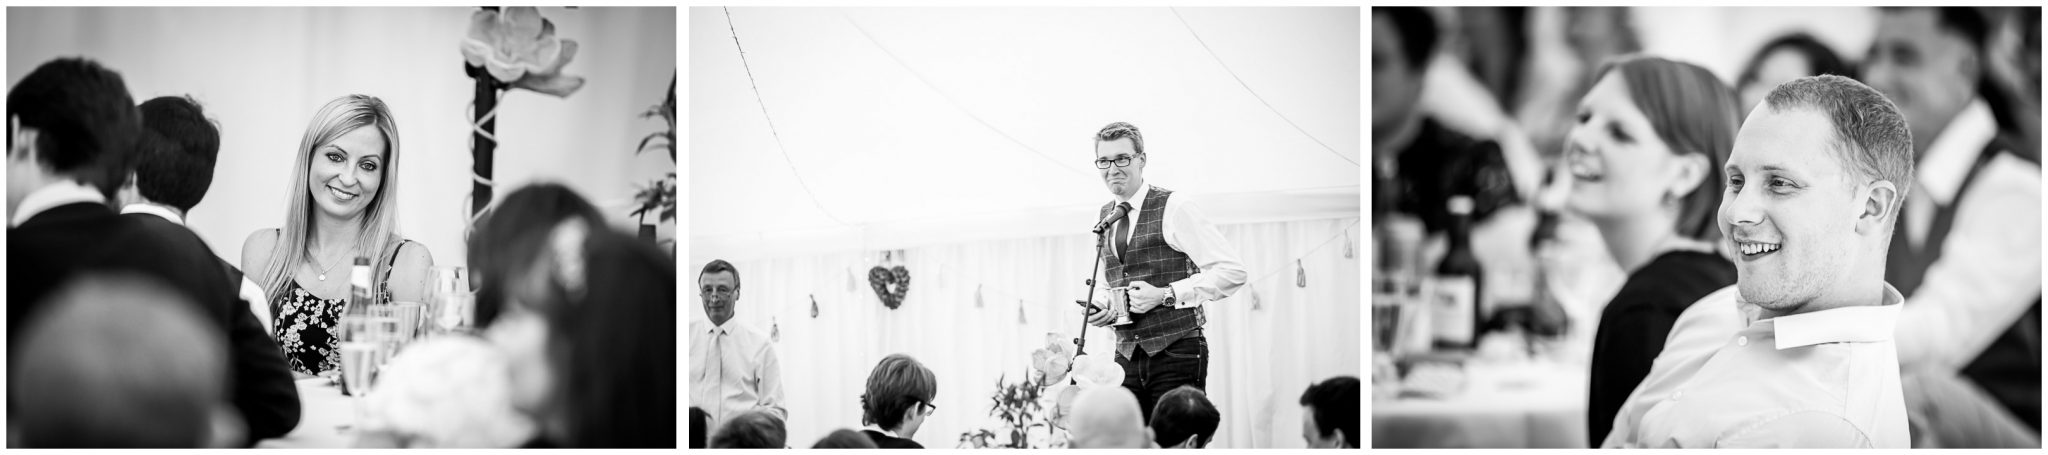 Timsbury Manor Festival Wedding guests watch wedding speeches